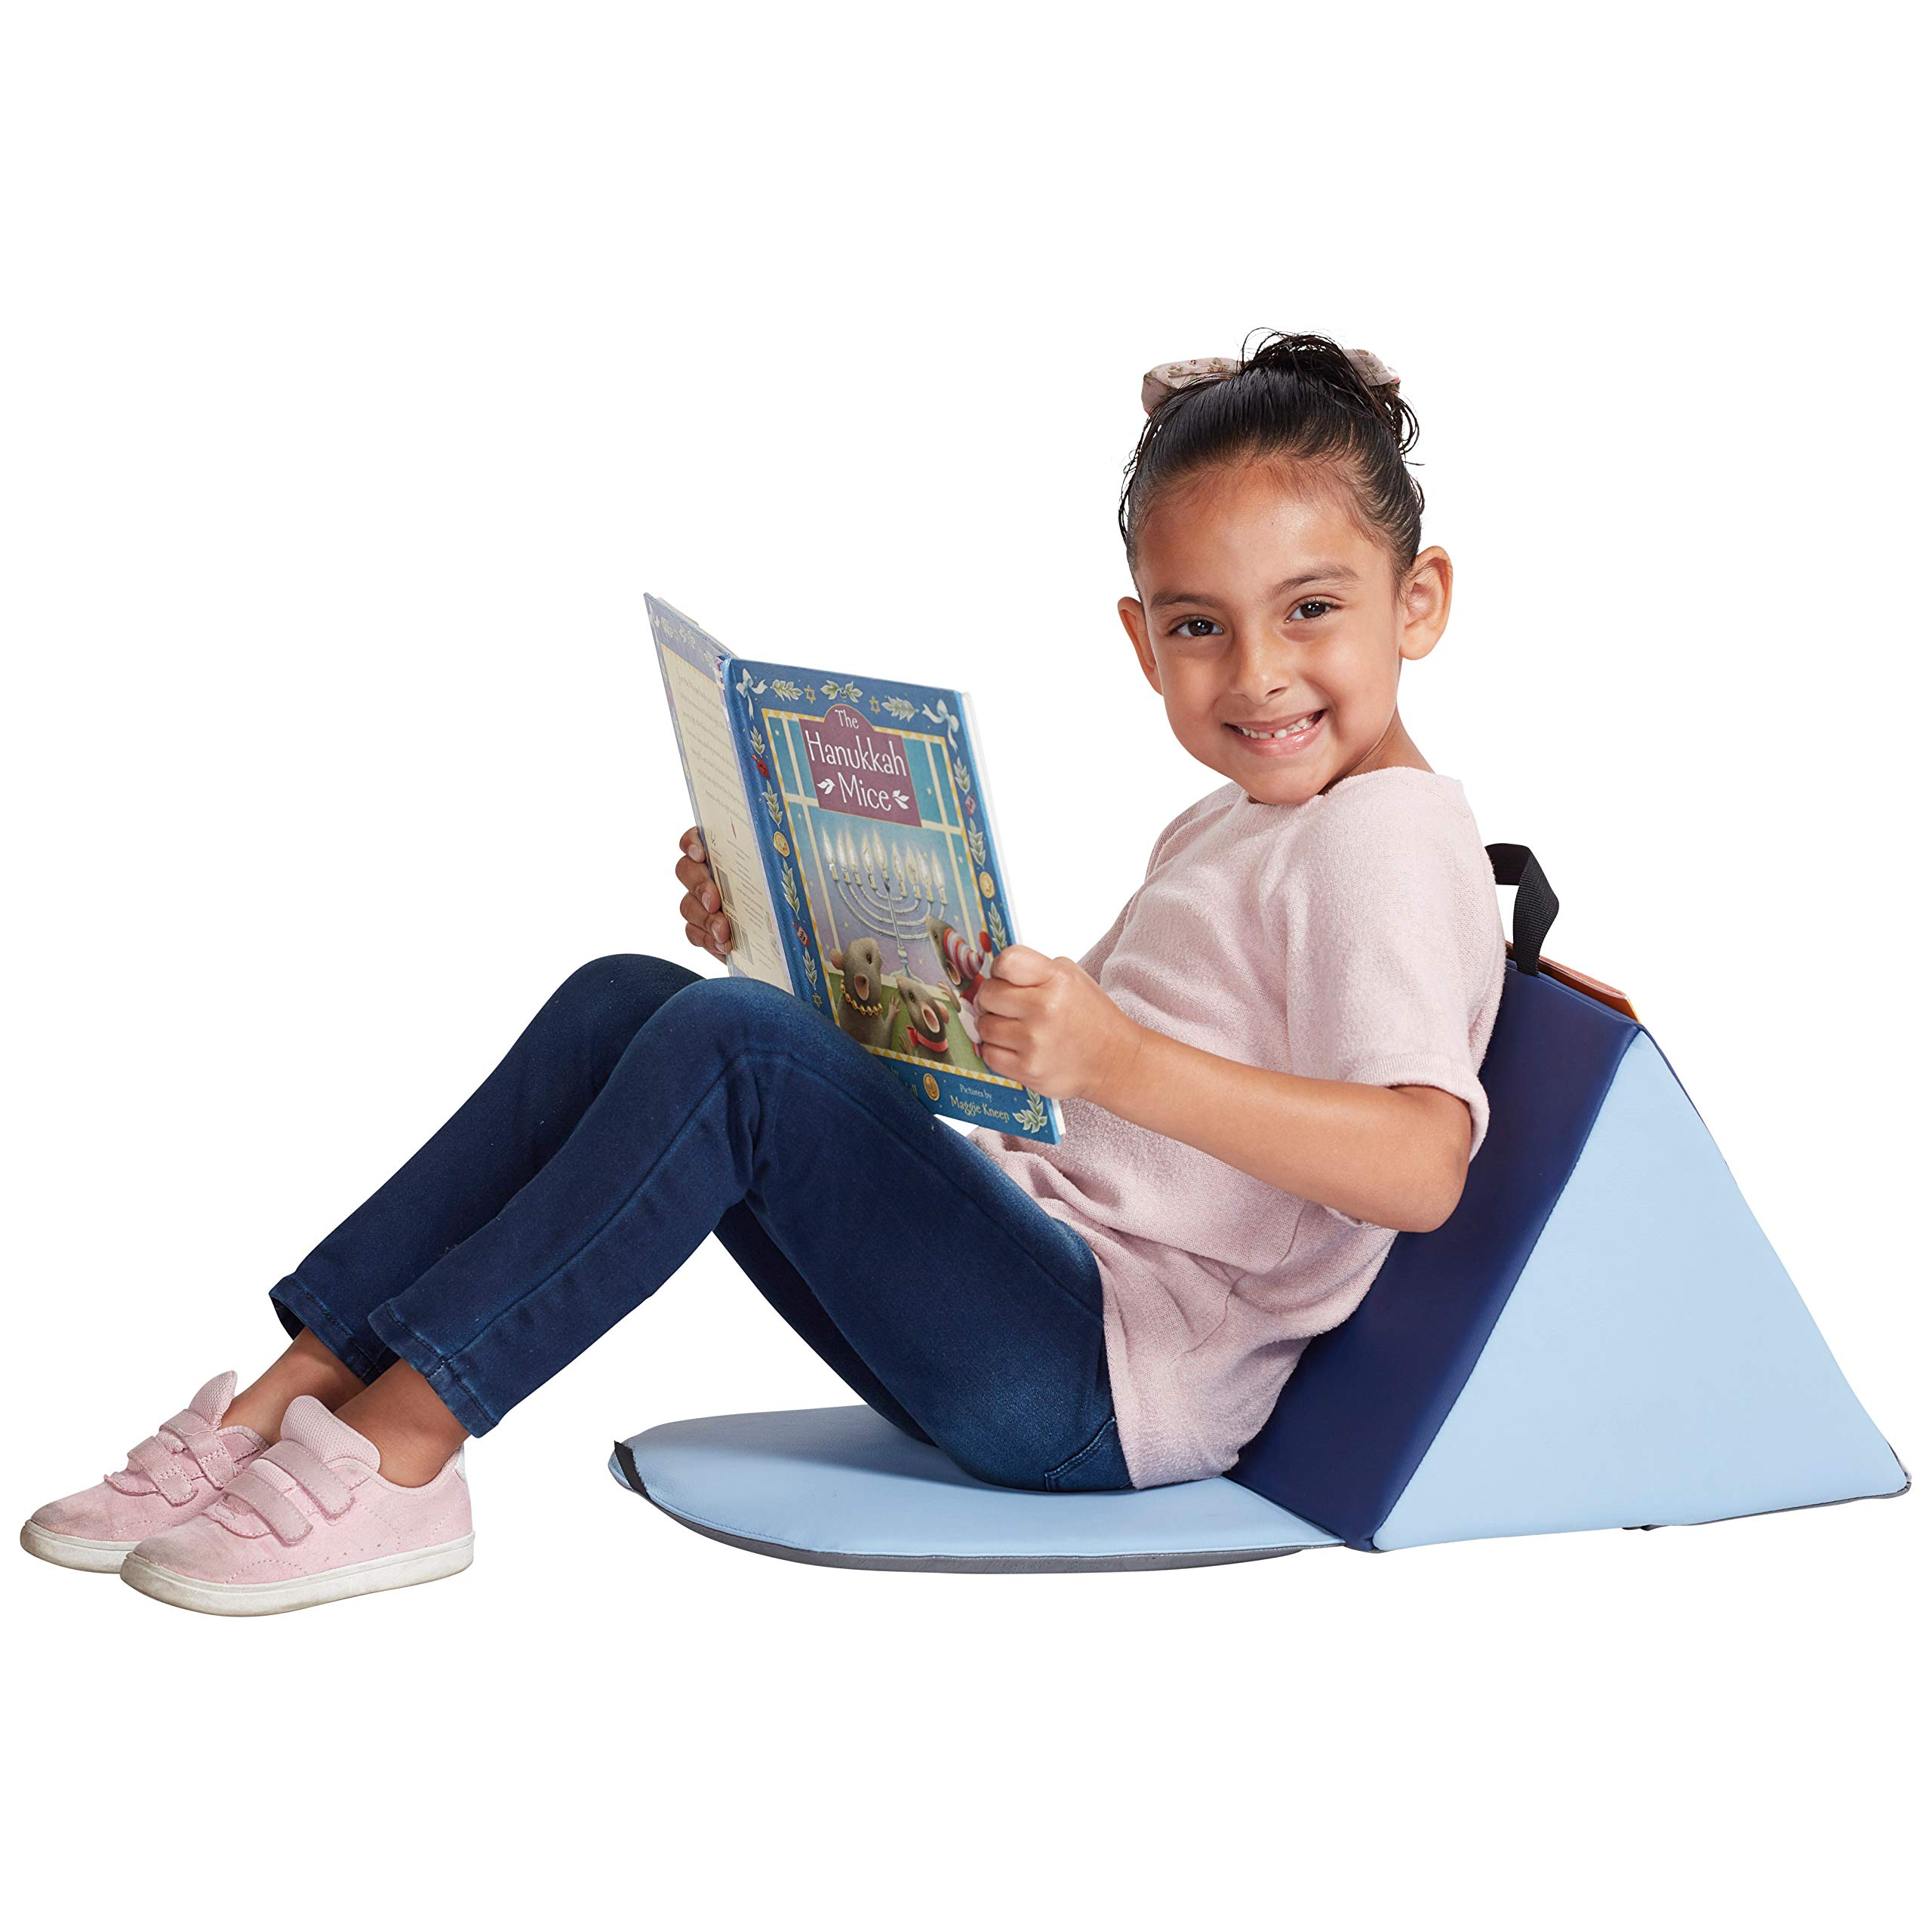 ECR4Kids SoftZone Carry Me Soft Seat with Storage Book Pocket and Handle - Portable Folding Seat/Reading Cushion for Kids and Toddlers, Navy/Powder Blue